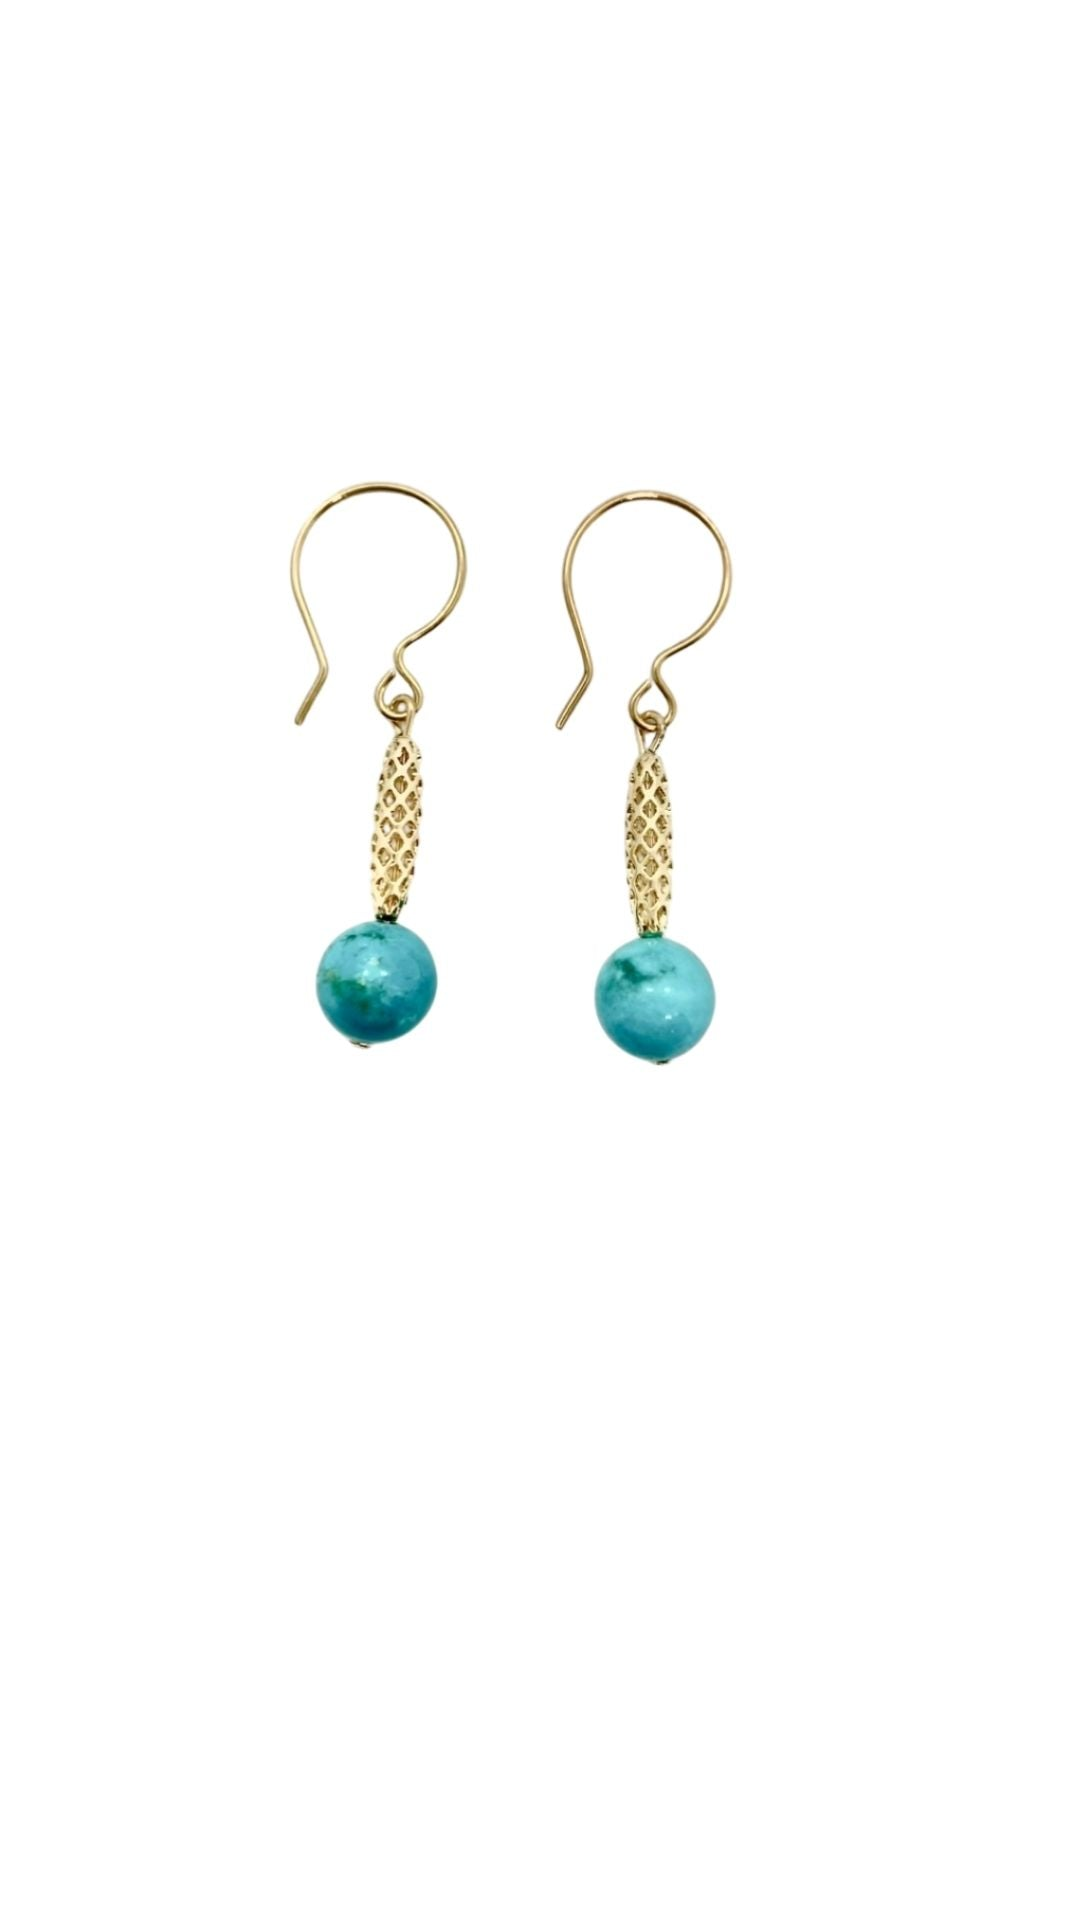 Turquoise and Gold Charm Earrings - Shopidpearl